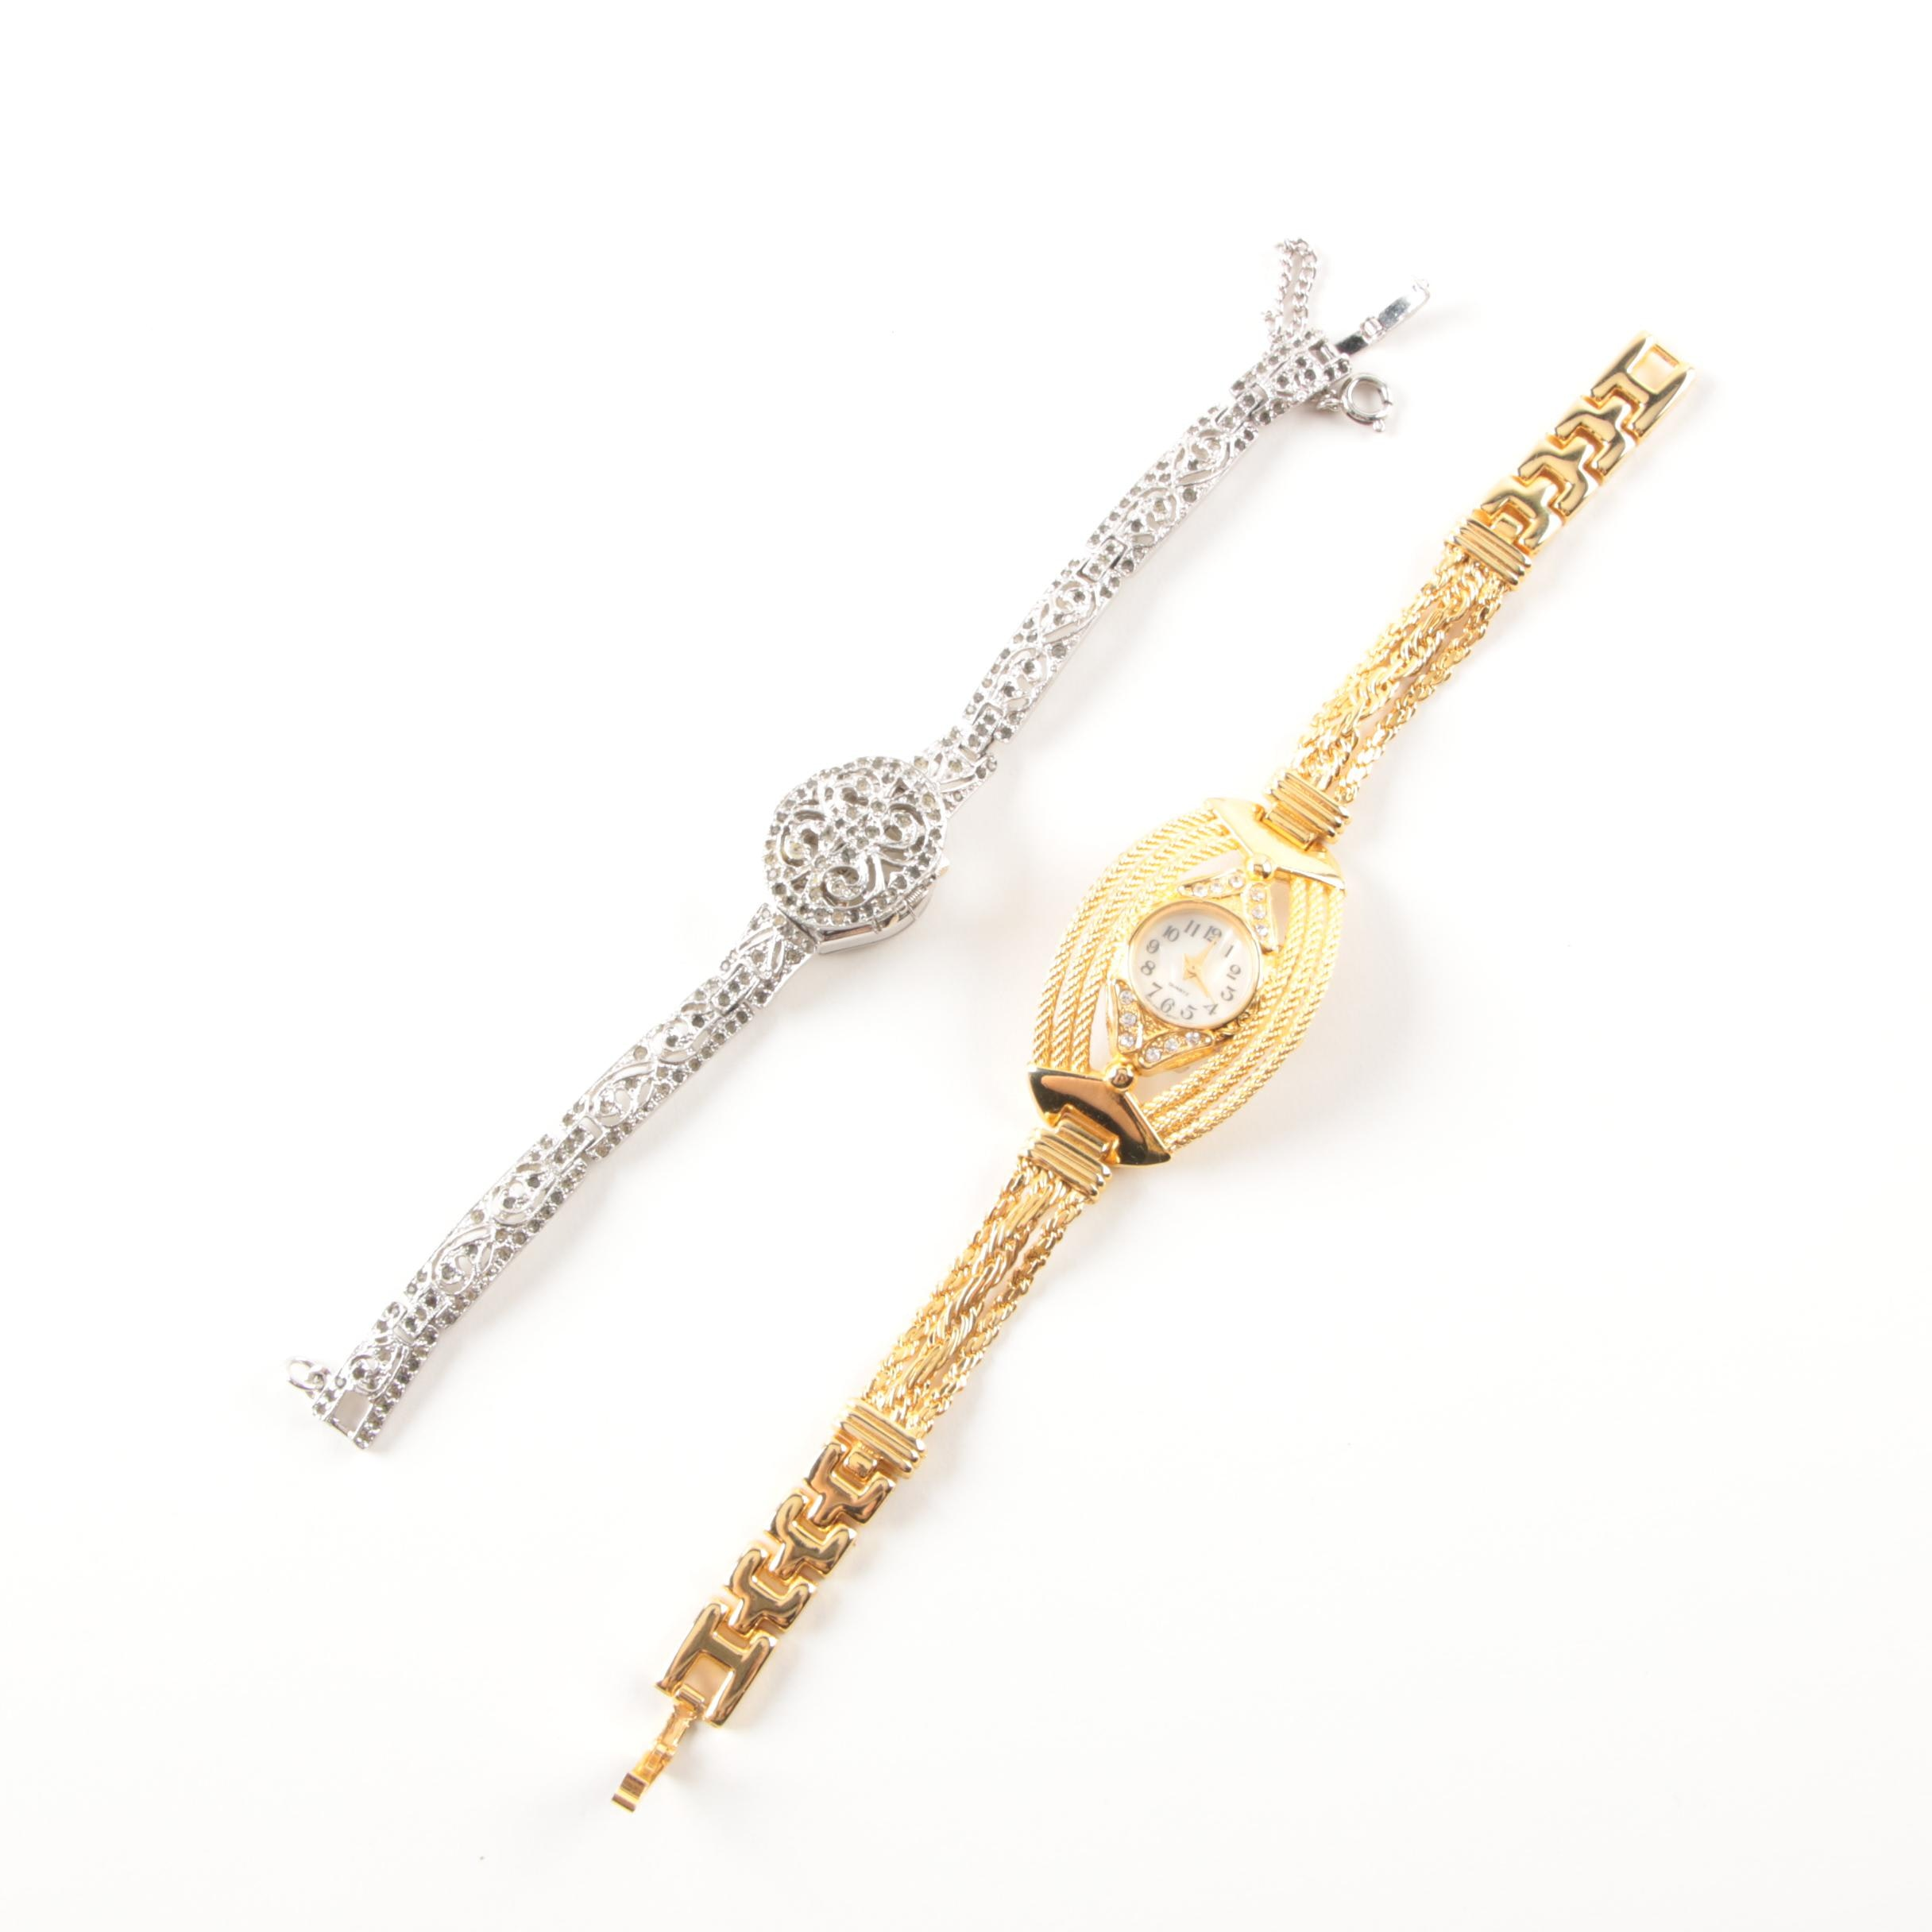 Pair of Fashion Wristwatches